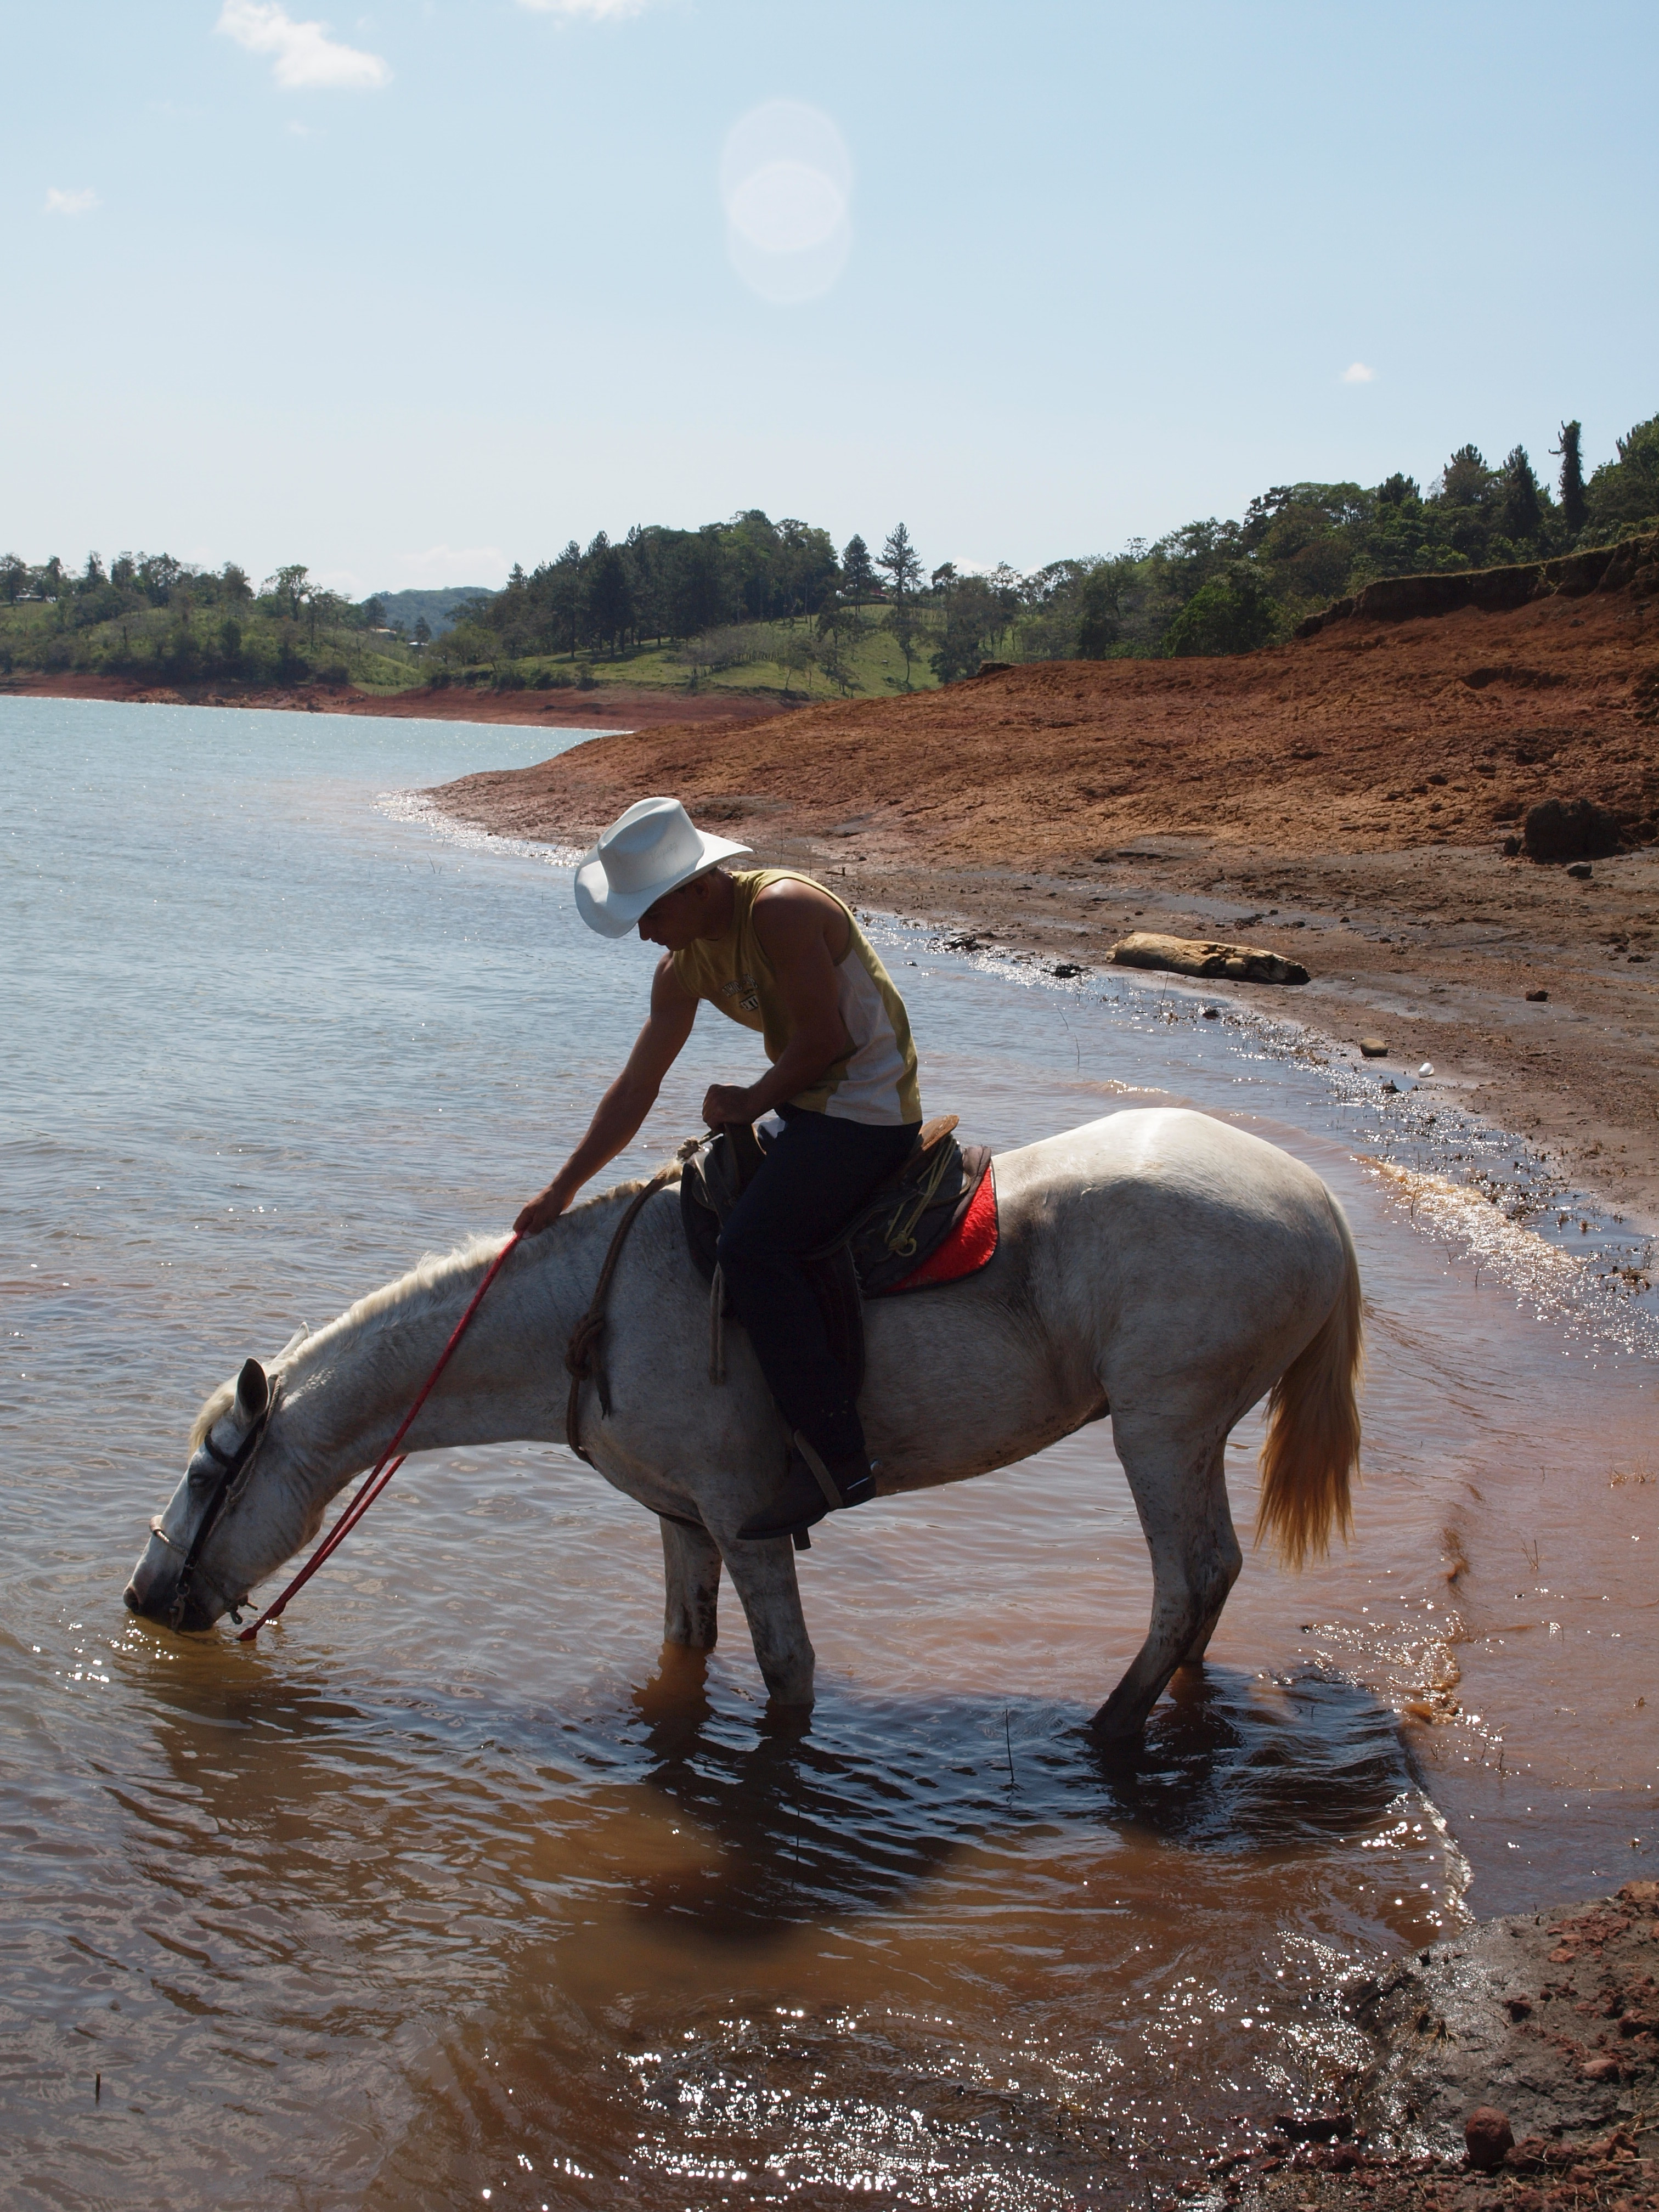 In rural areas, many people still use horses to get around. In this photo, a rider in Arenal stops by the lake for a drink.